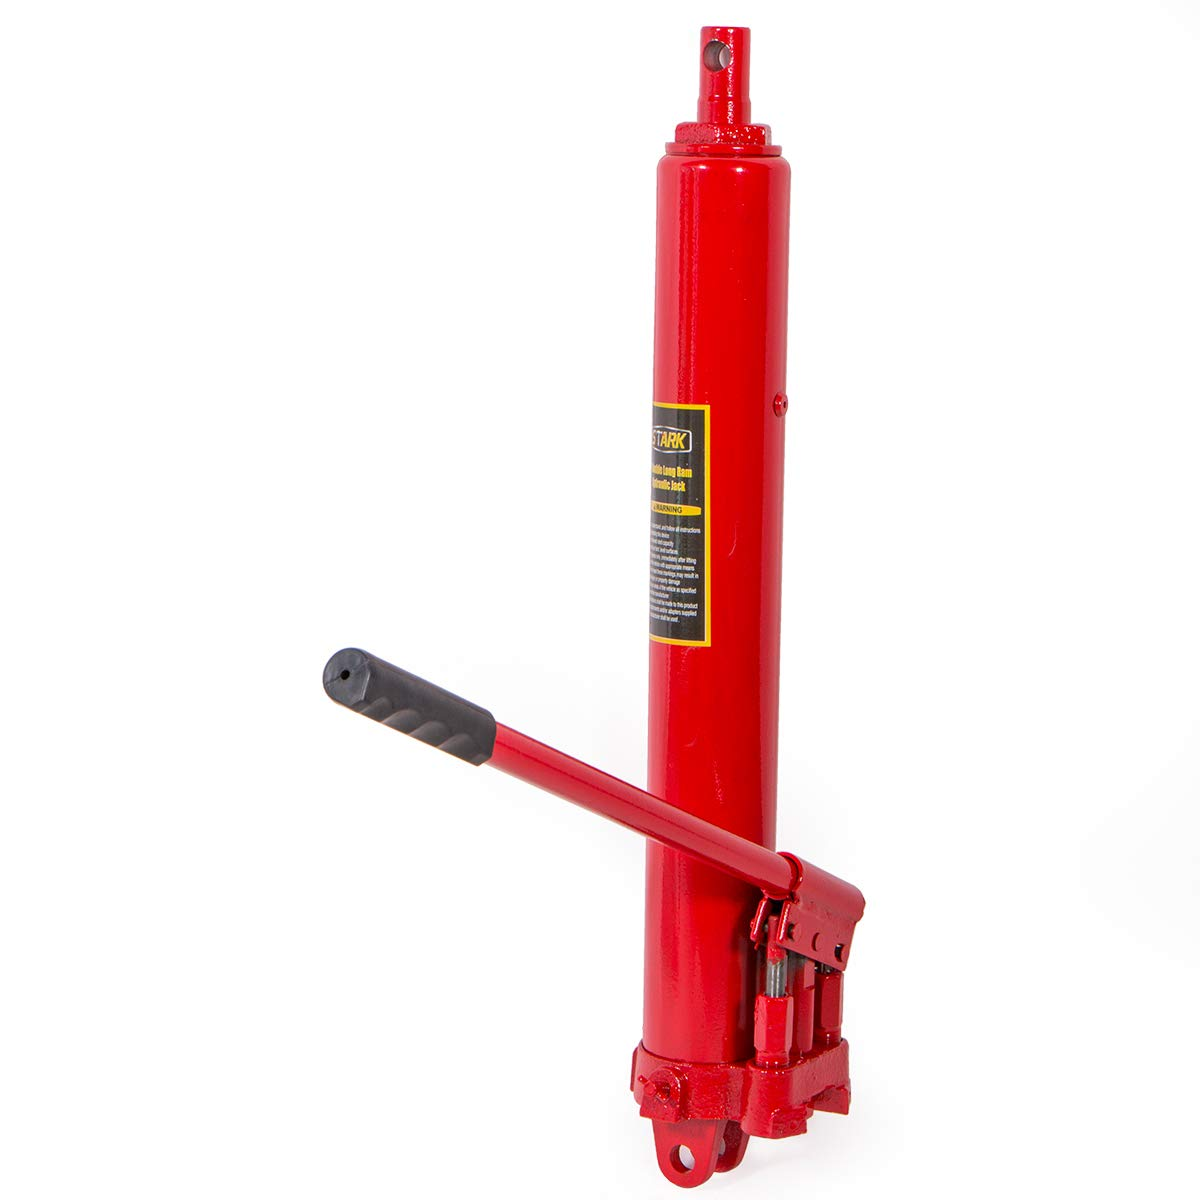 Stark 8-Ton Double Cherry Picker Pump Long Hydraulic Ram Jack Engine Lift Hoist Manual w/Handle by Stark USA